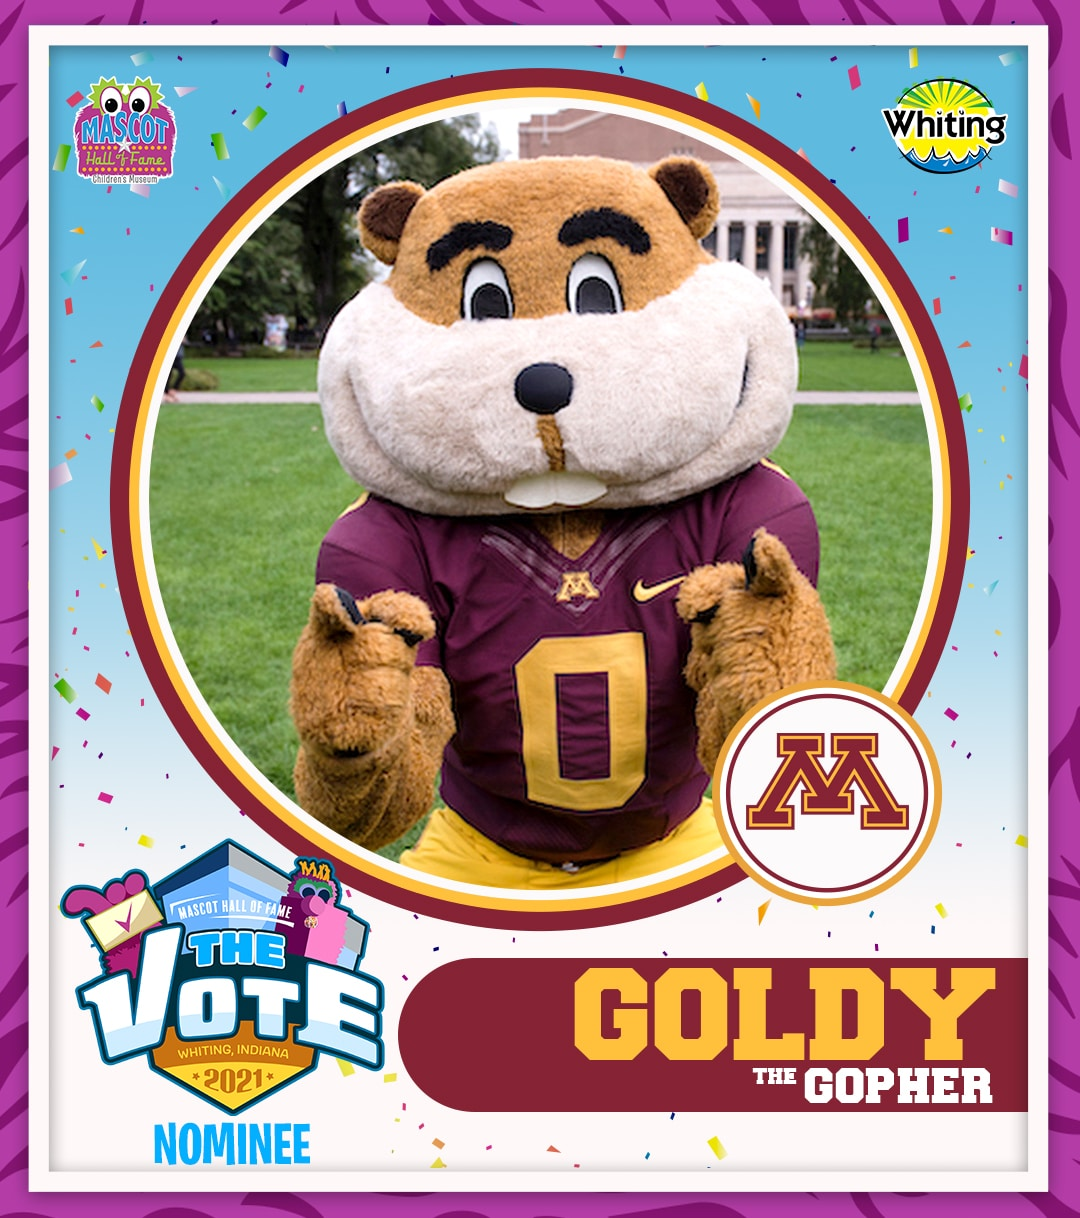 Goldy the Gopher photo